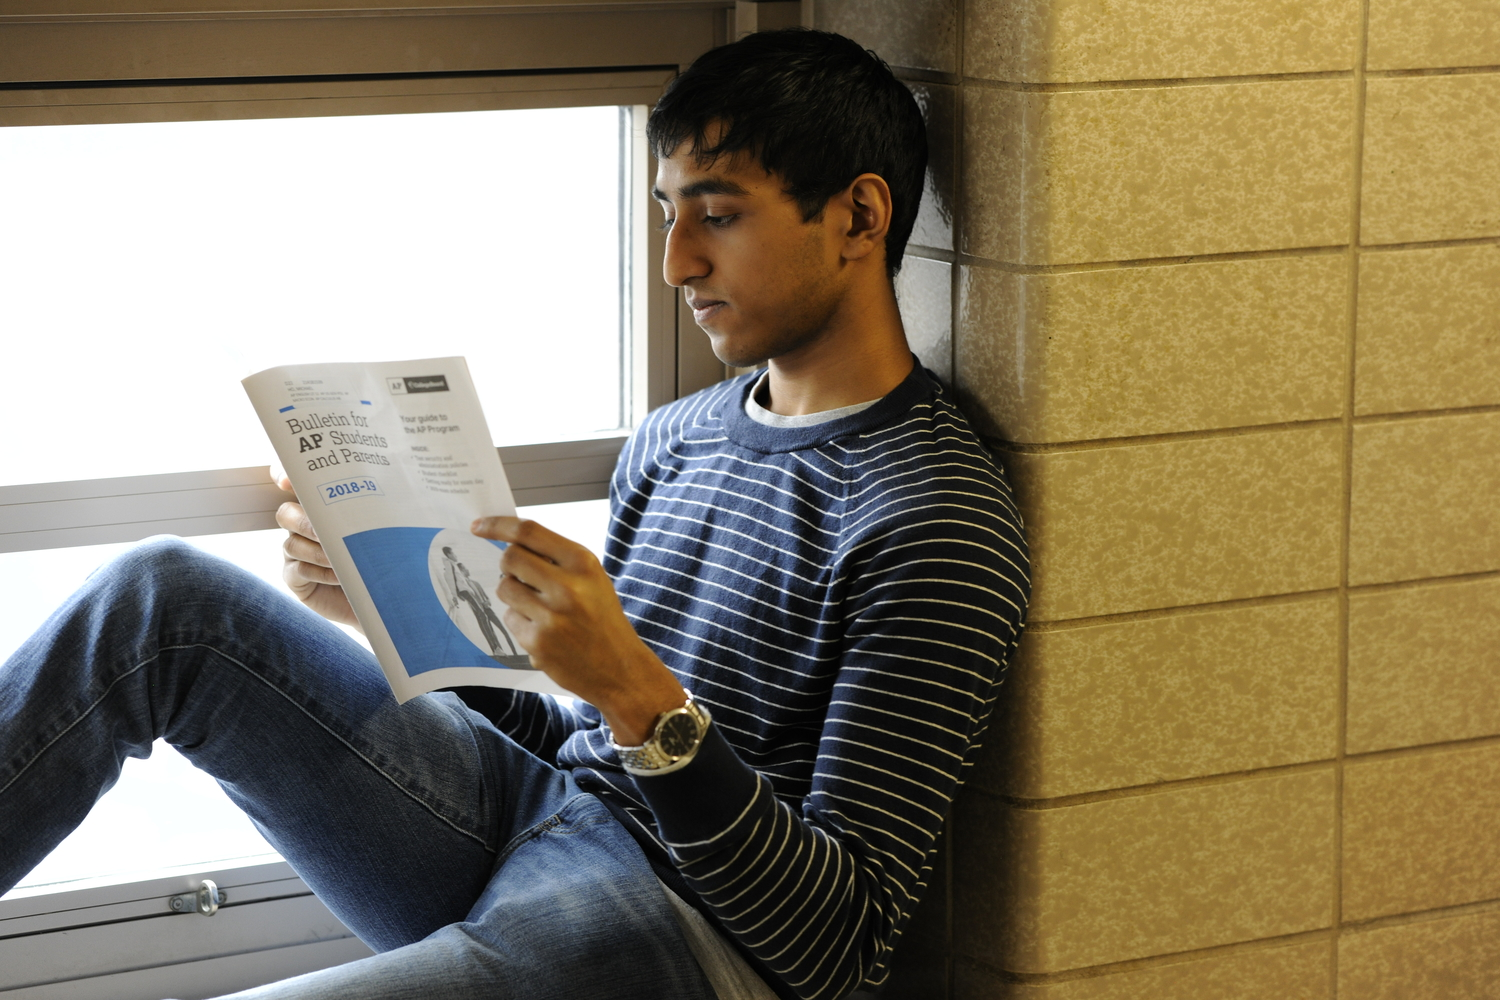 Tejpal (Phillip) Ramdas '19 reads the Advanced Placement Bulletin packet for more information on the upcoming A.P. exams.